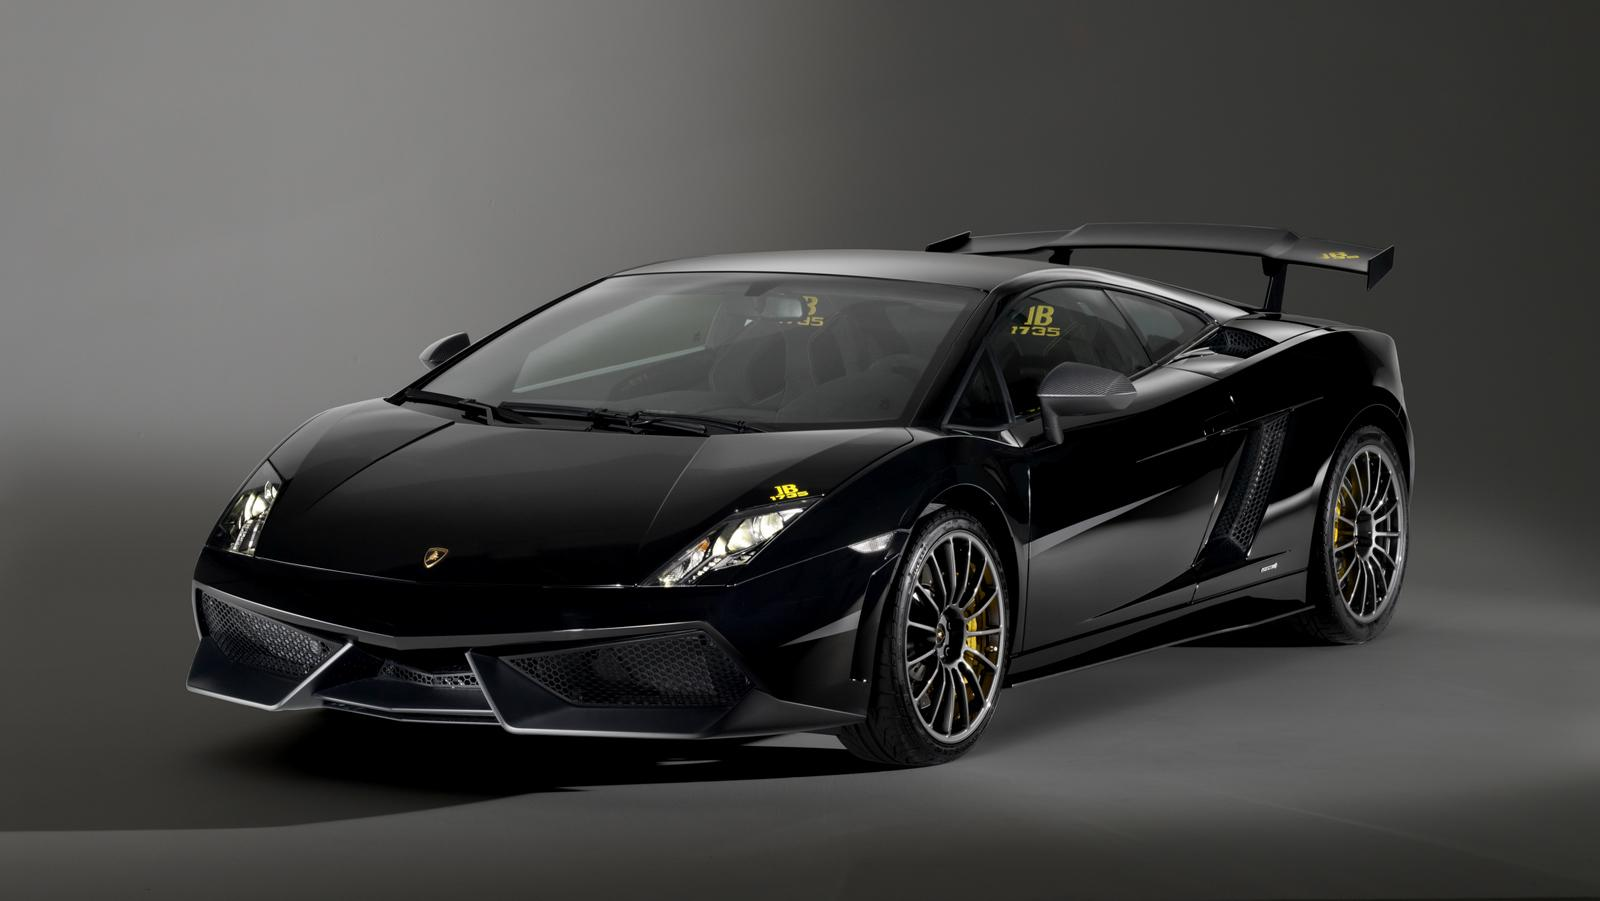 Black Sports Cars 12 High Resolution Wallpaper. Black Sports Cars 12 High  Resolution Wallpaper